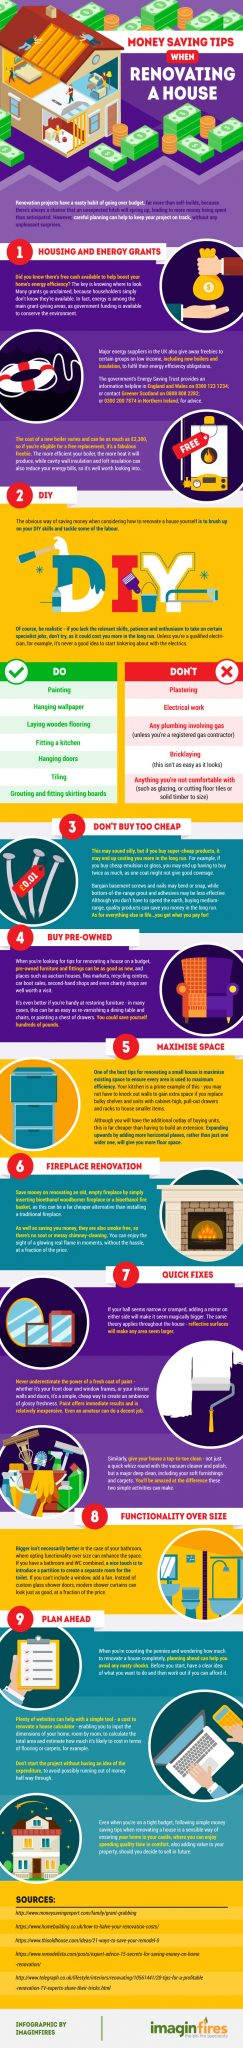 Renovating a House Infographic